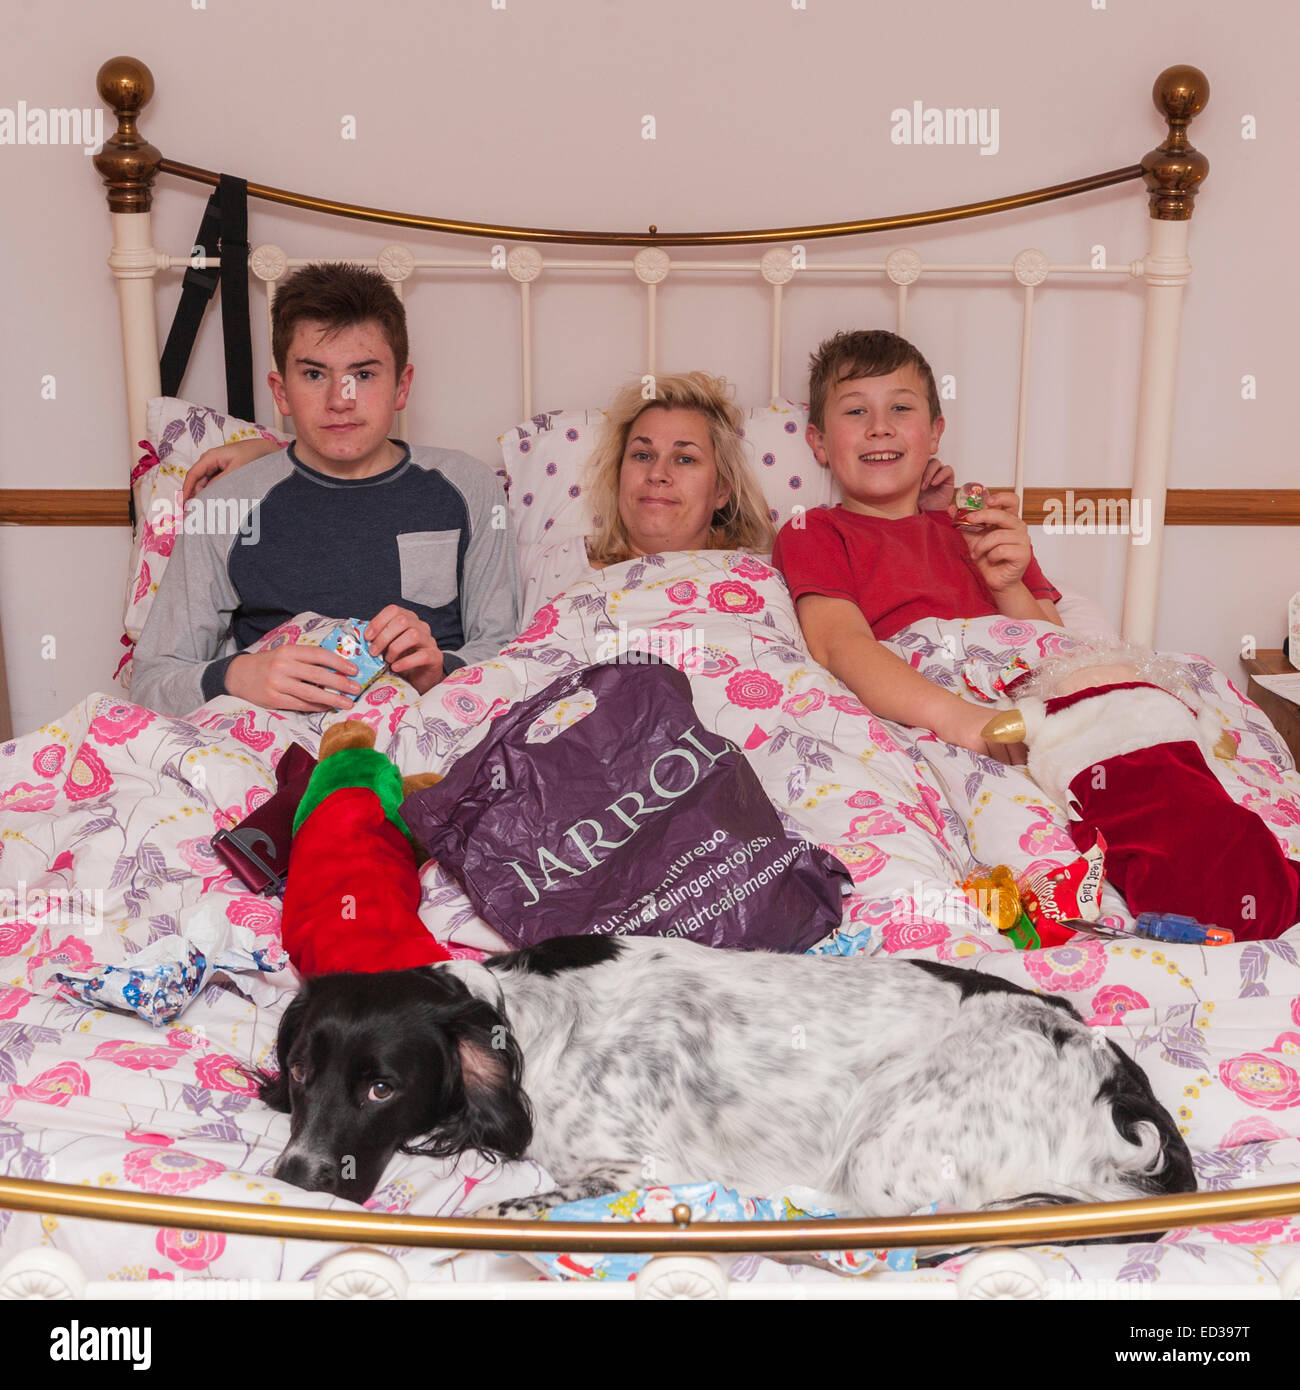 Two Brothers And Mum Opening Stockings In Mum's Bed On Christmas Morning - Stock Image